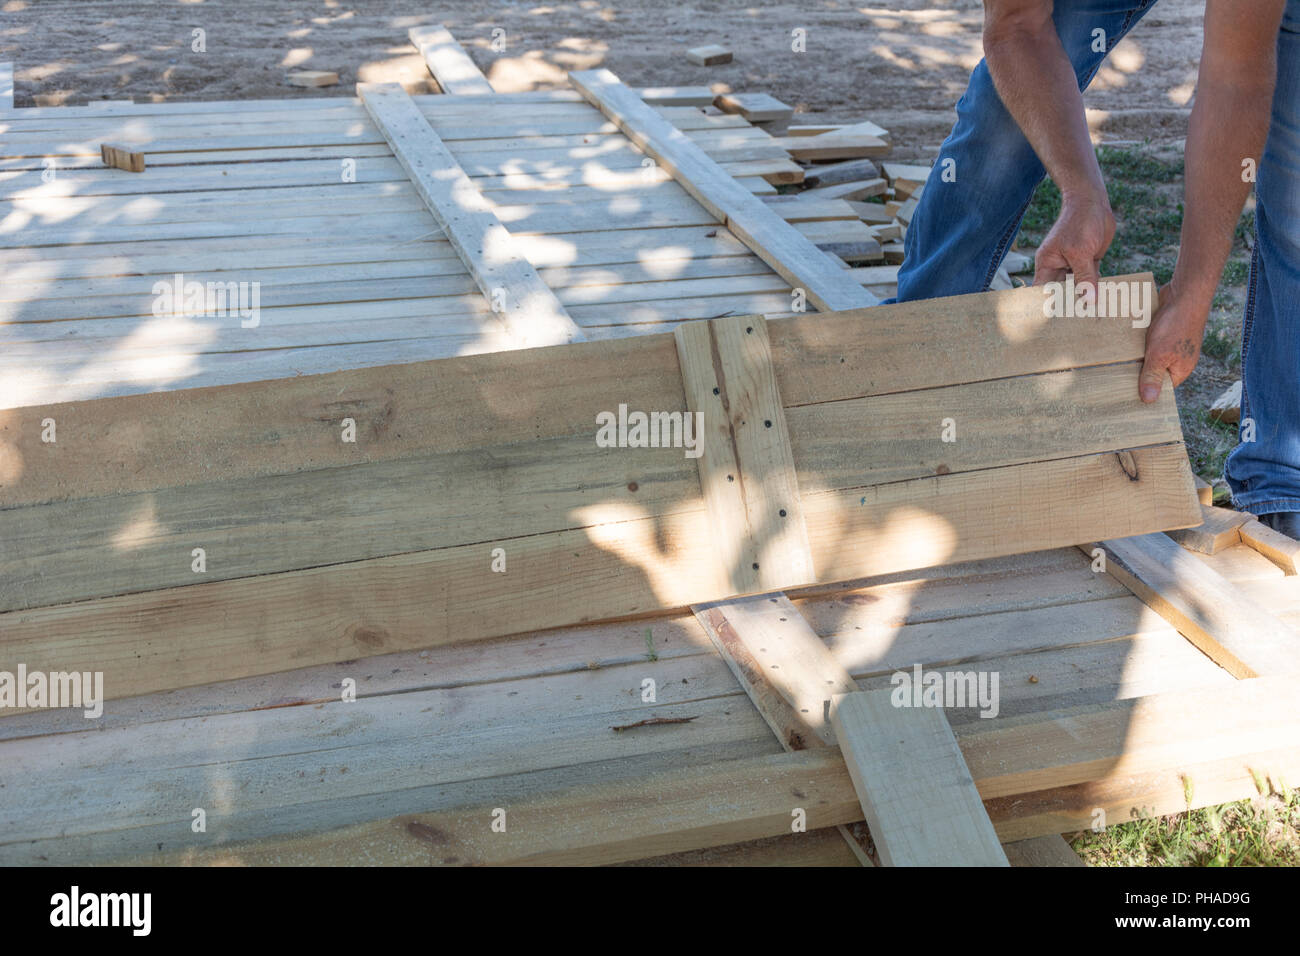 Man building a wooden fence. Workers pick up wooden boards for the fence formwork. Wooden formworks for concrete at construction site. Stock Photo